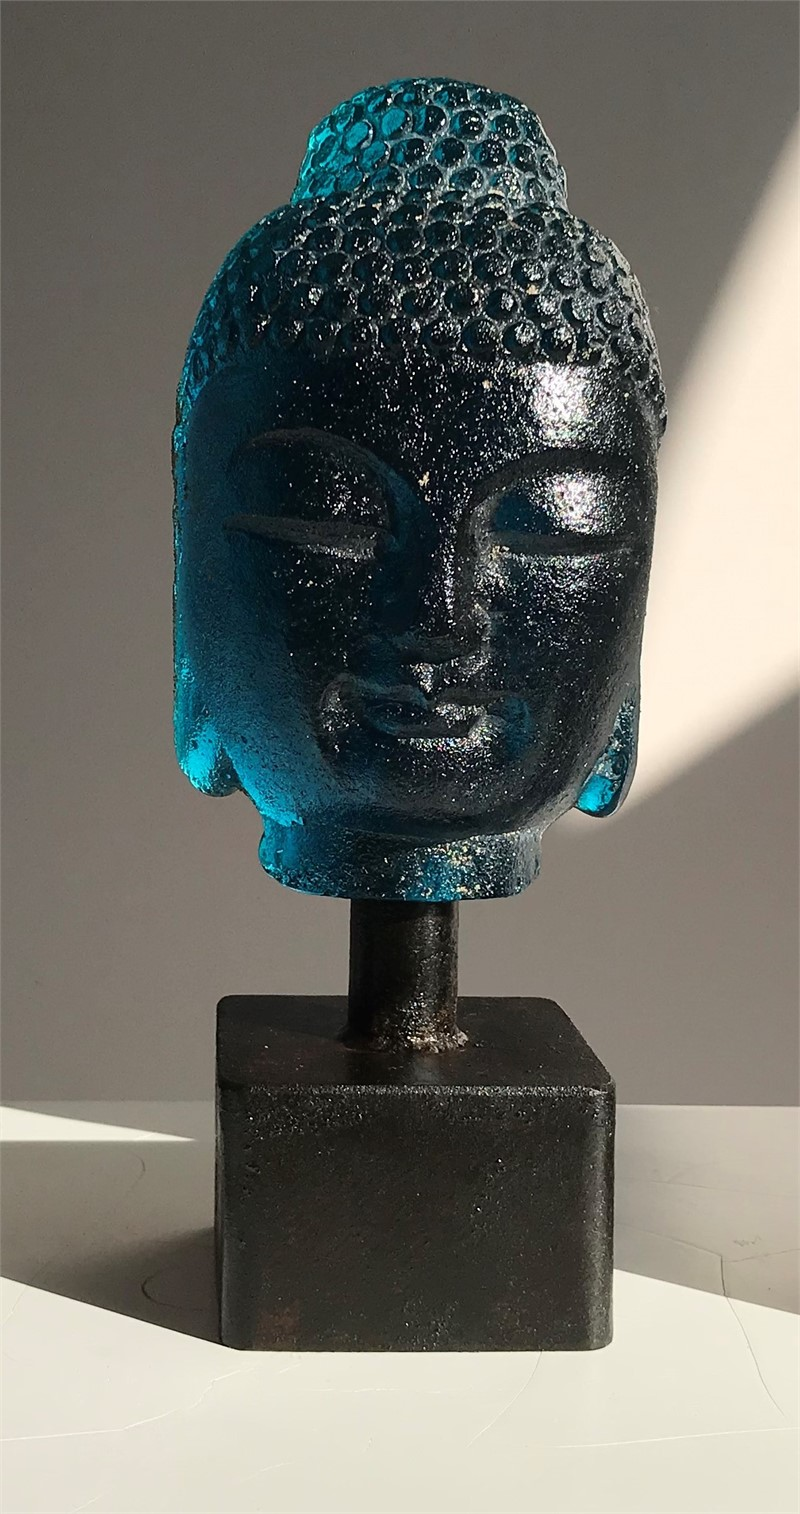 Mini Buddha - Avon Blue , 2019